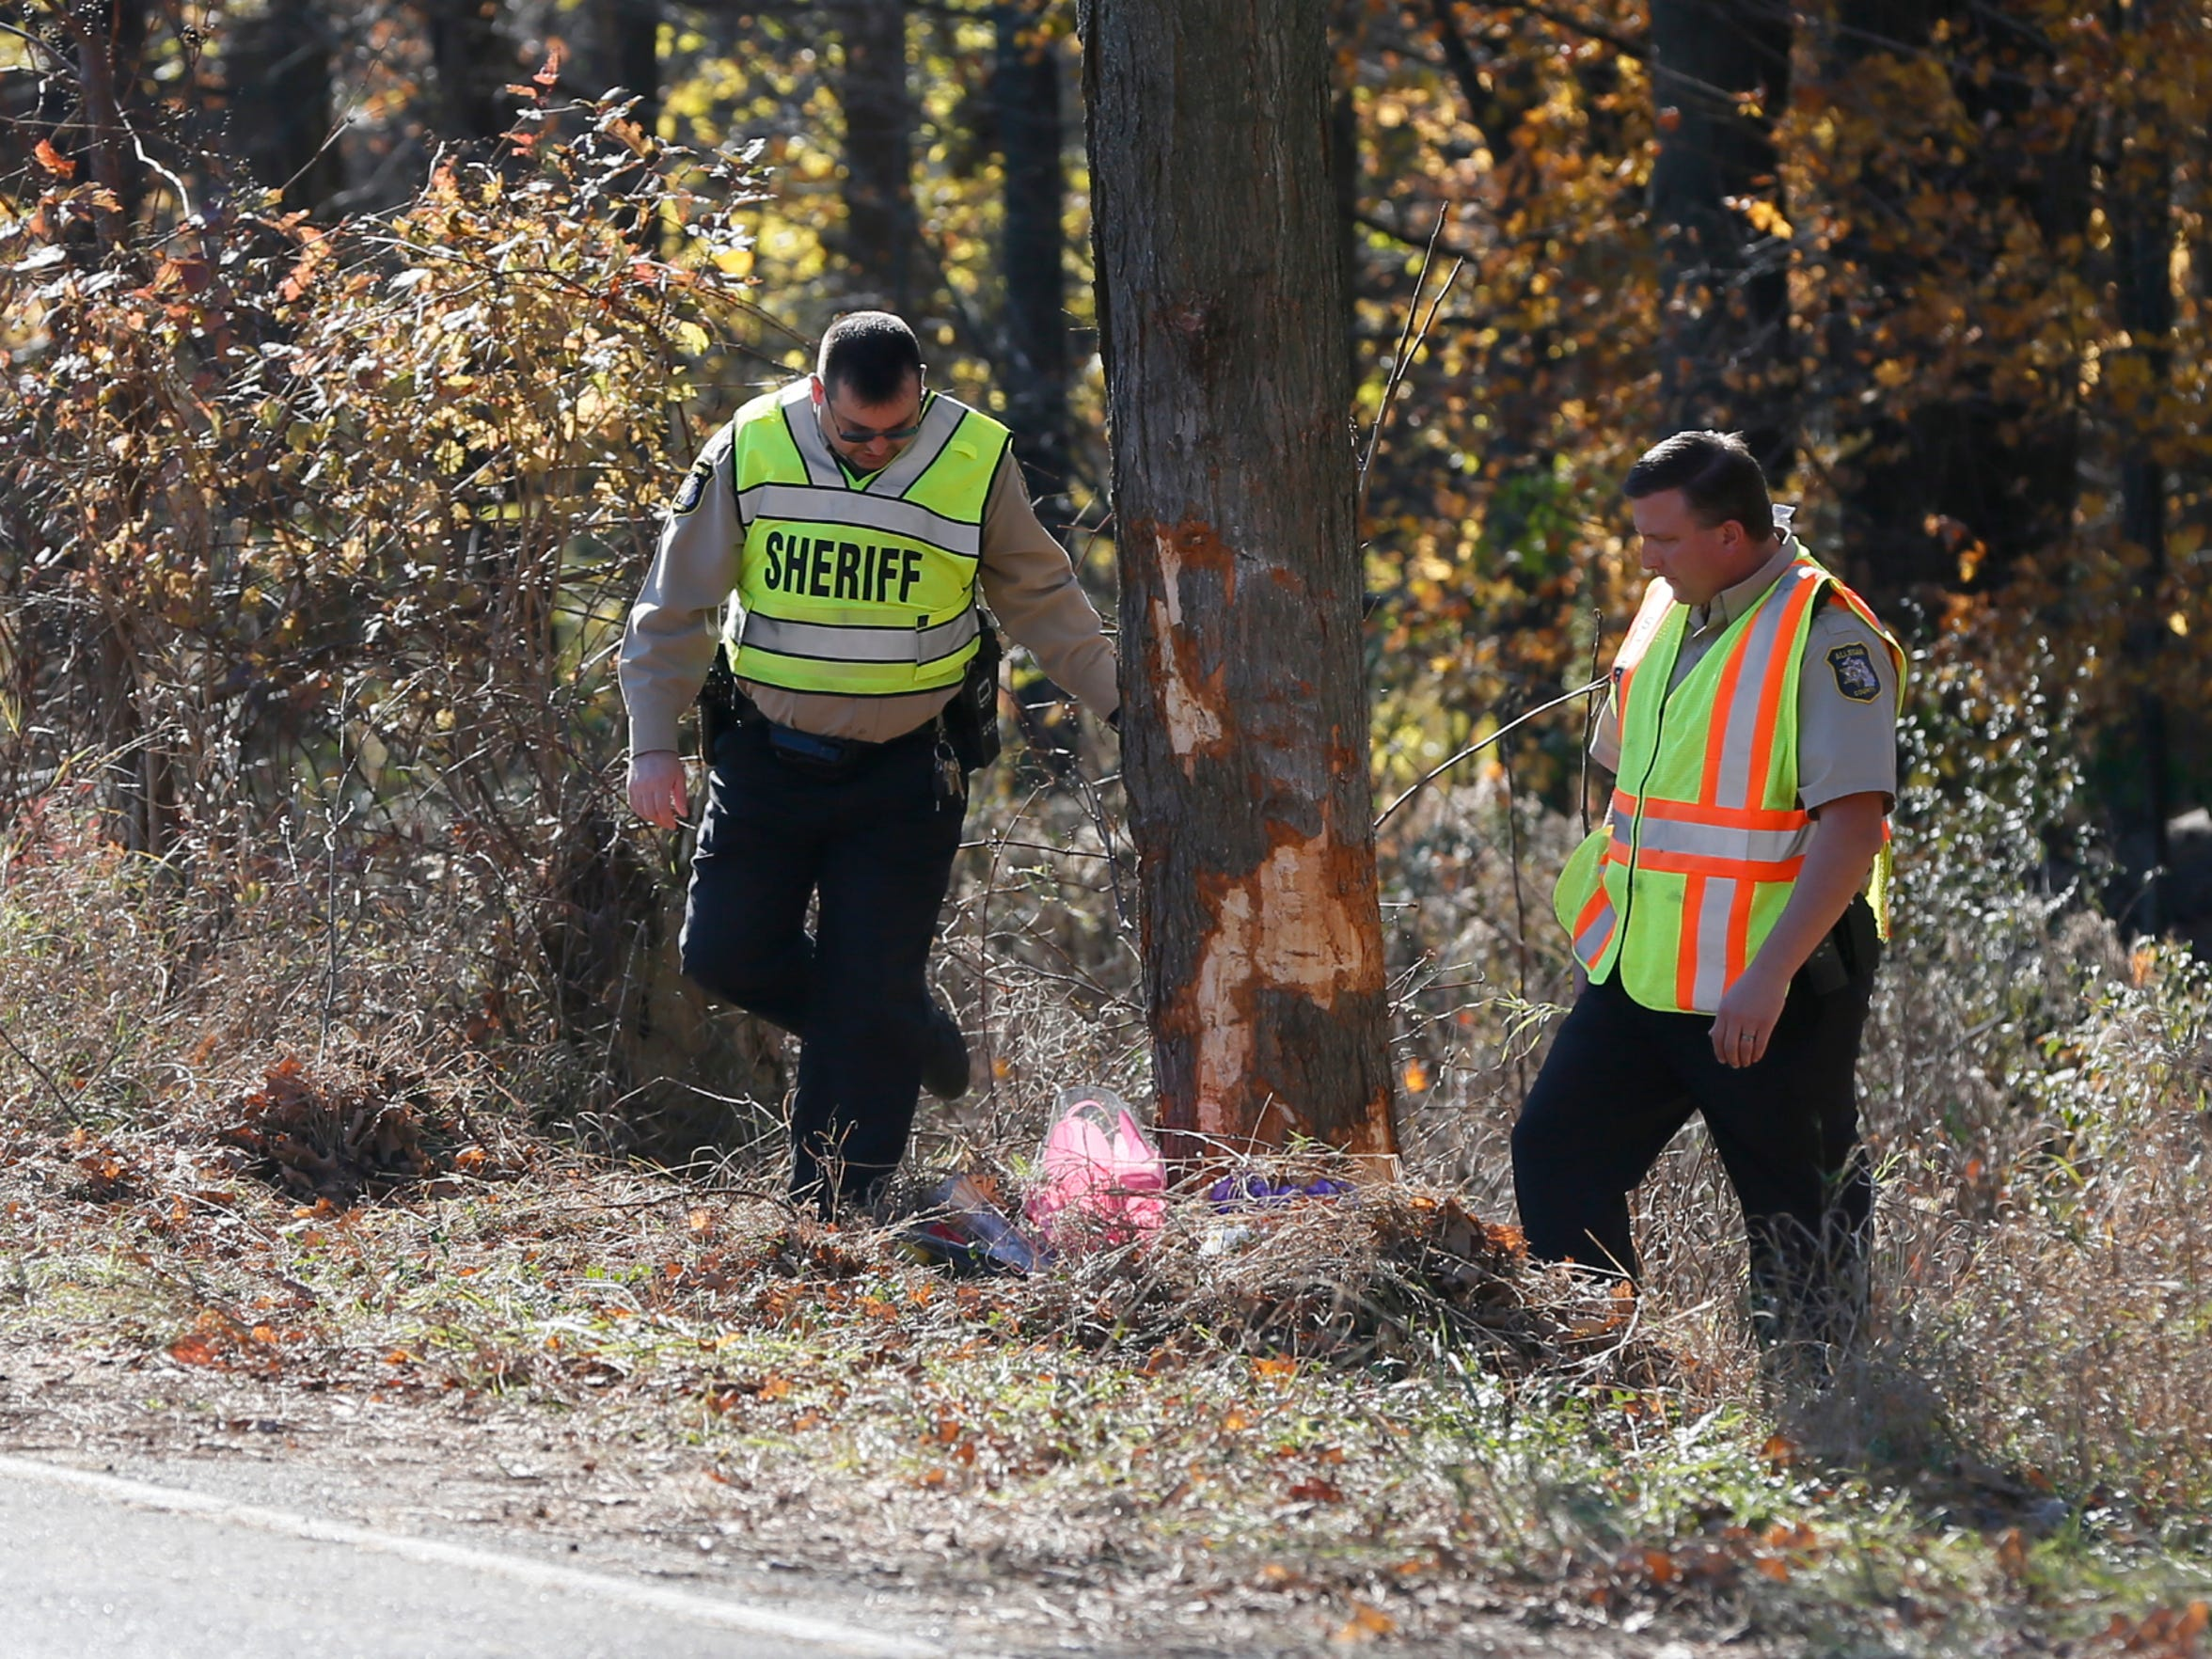 Two Allegan County Sheriff deputies continue their